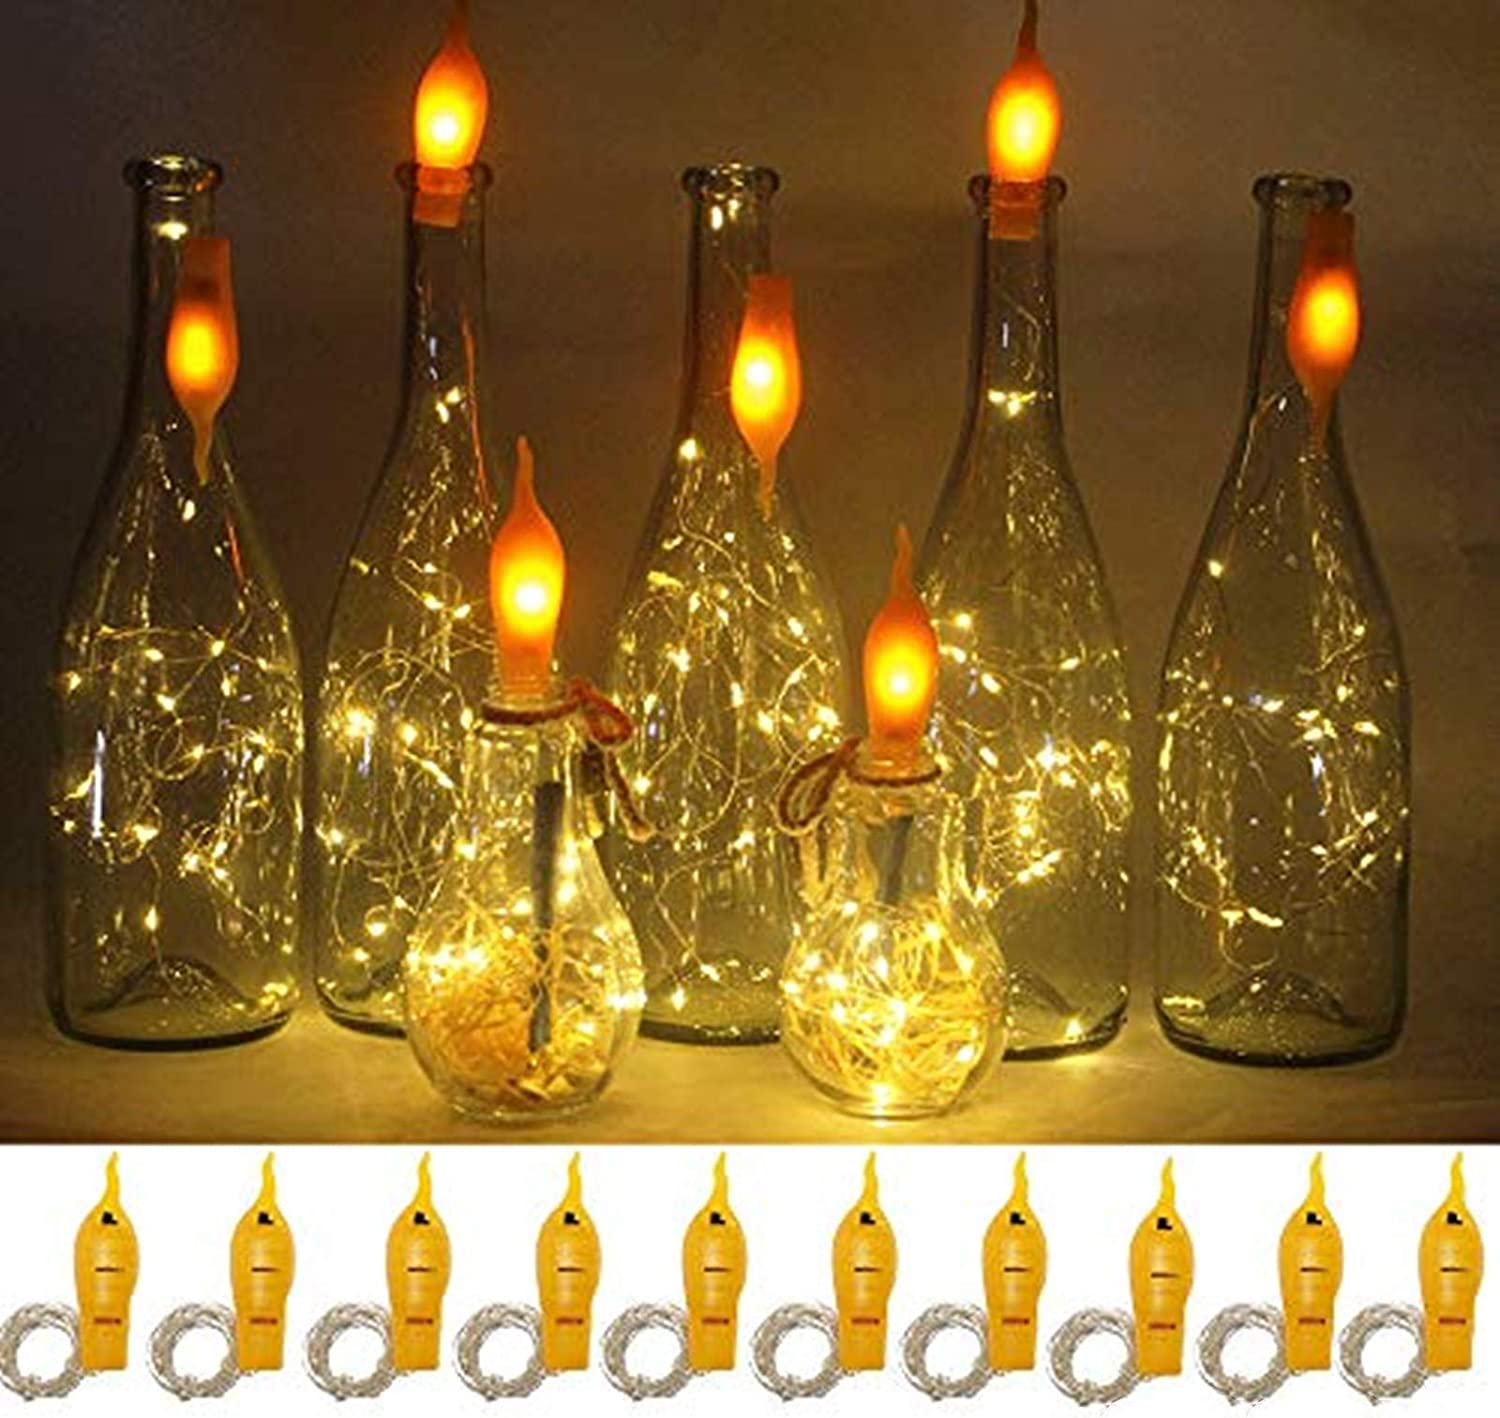 YJFWAL Wine Bottle Lights with Cork 12 Packs Warm White Battery Operated  12.12ft 12 LED String Lights with Candle Flame Starry Fairy Lights for Party  ...